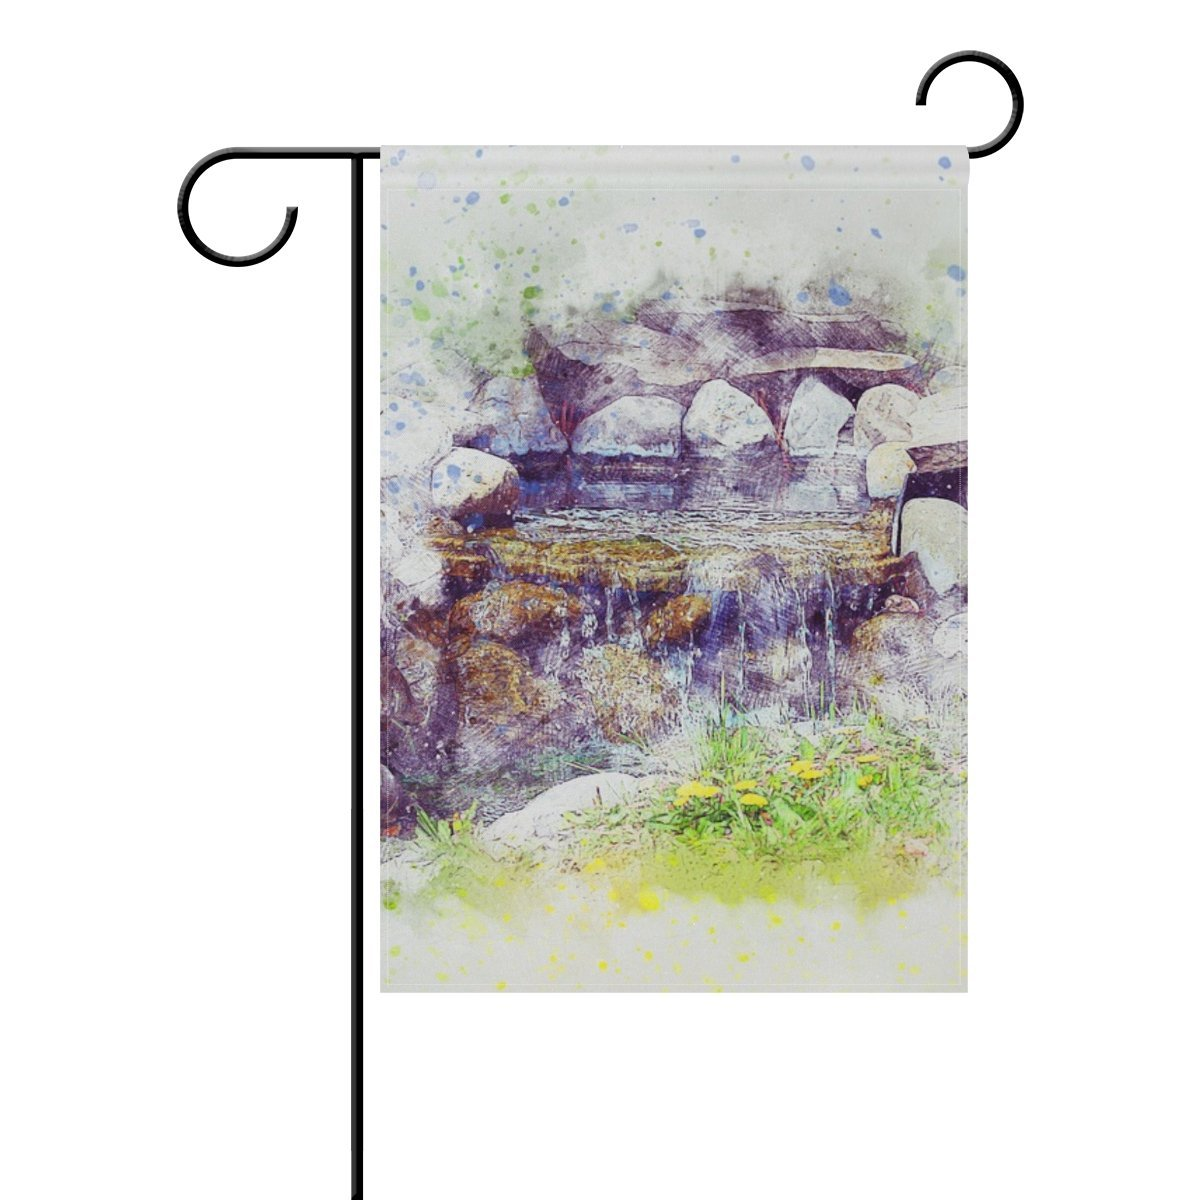 Home Decorative Outdoor Double Sided Fountain Water Art Abstract Stones Nature Garden Flag,house Yard Flag,garden Yard Decorations,seasonal Welcome Outdoor Flag 12 X 18 Inch Spring Summer Gift